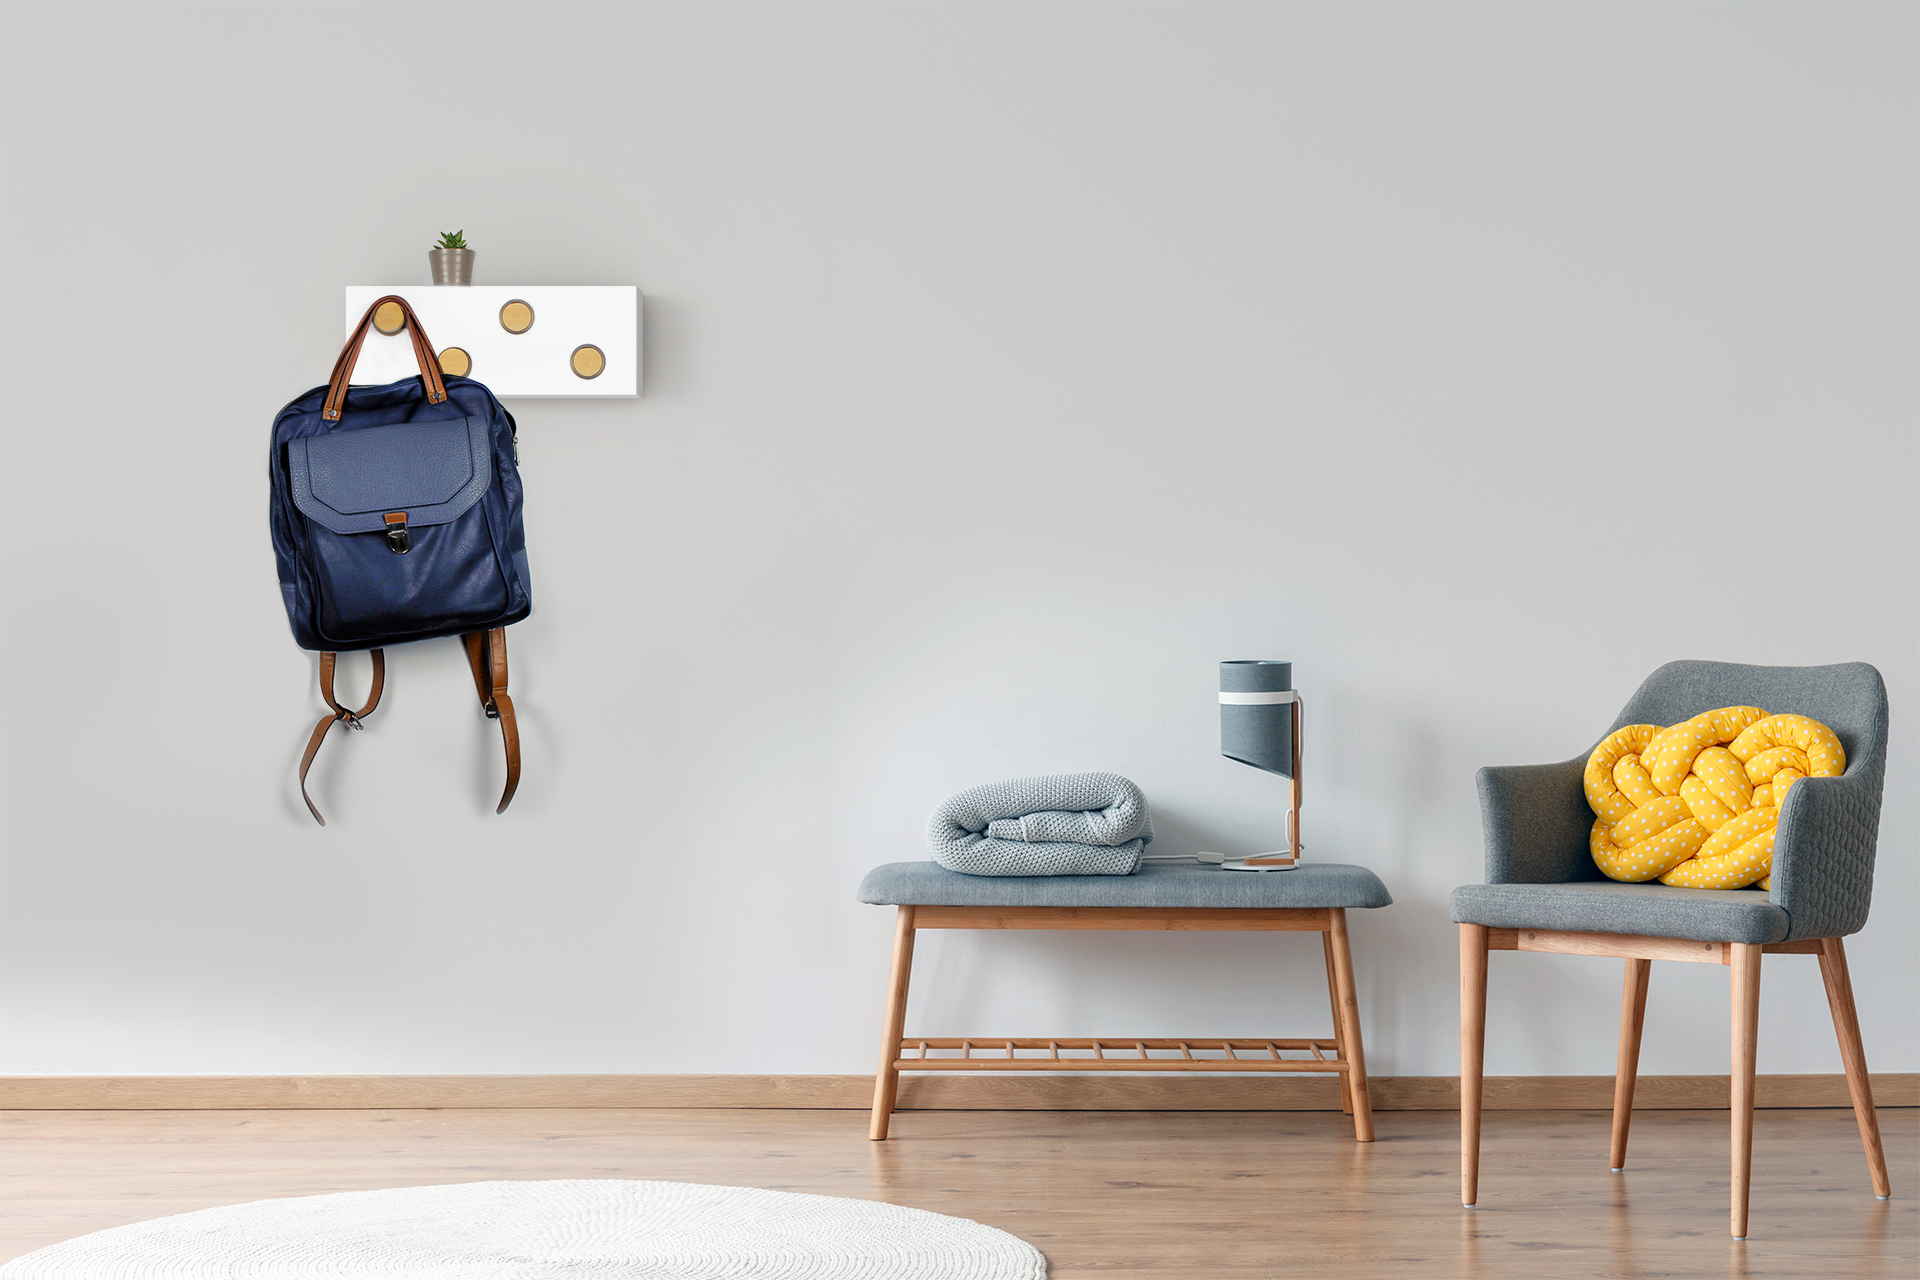 Nordic furniture style. Interactive wall hanger that allows the creation of different compositions depending on the user's needs.